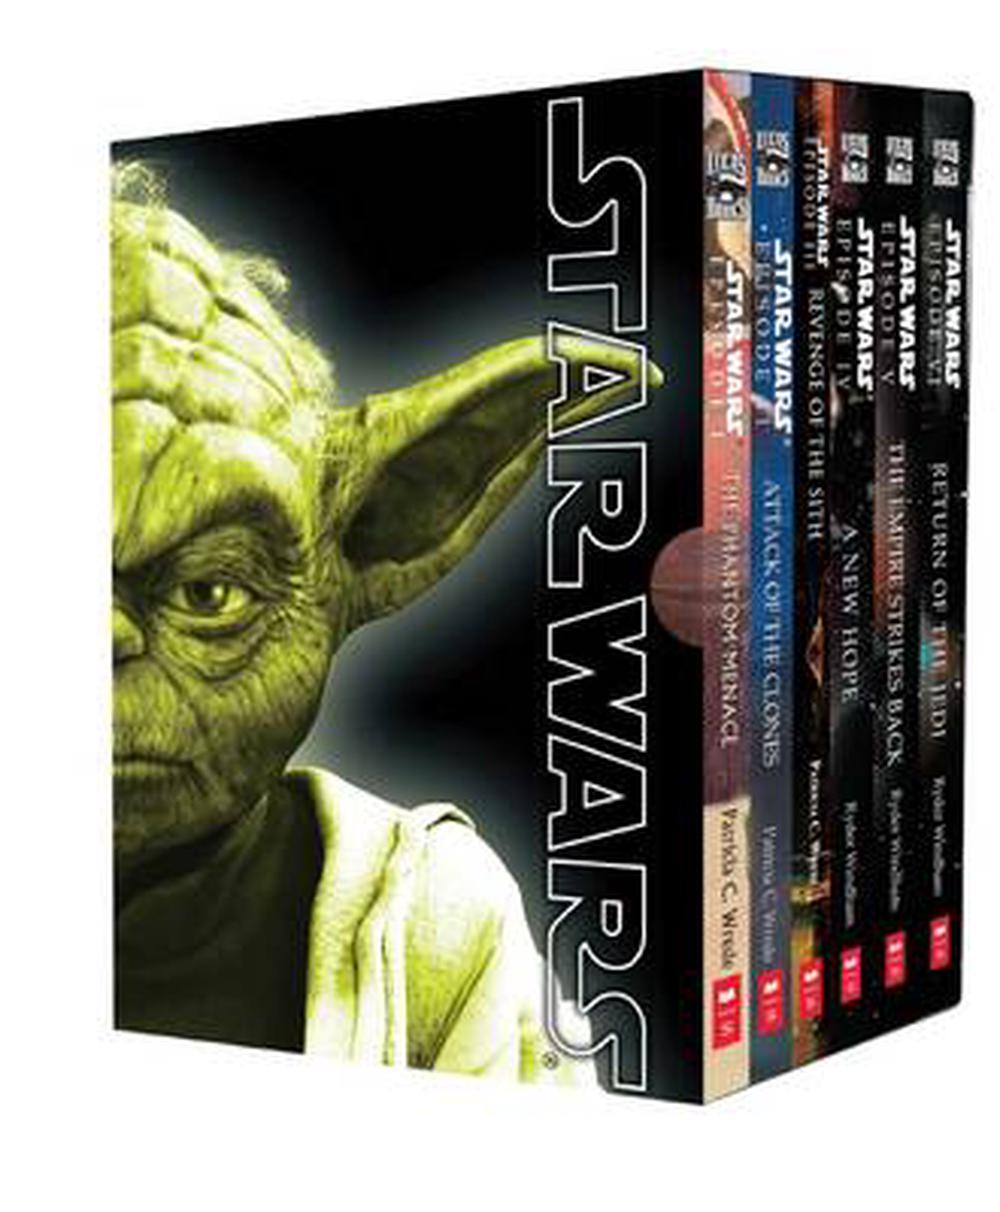 Jedi Lighting Nz Star Wars Movie Novel Box Set By Patricia C. Wrede